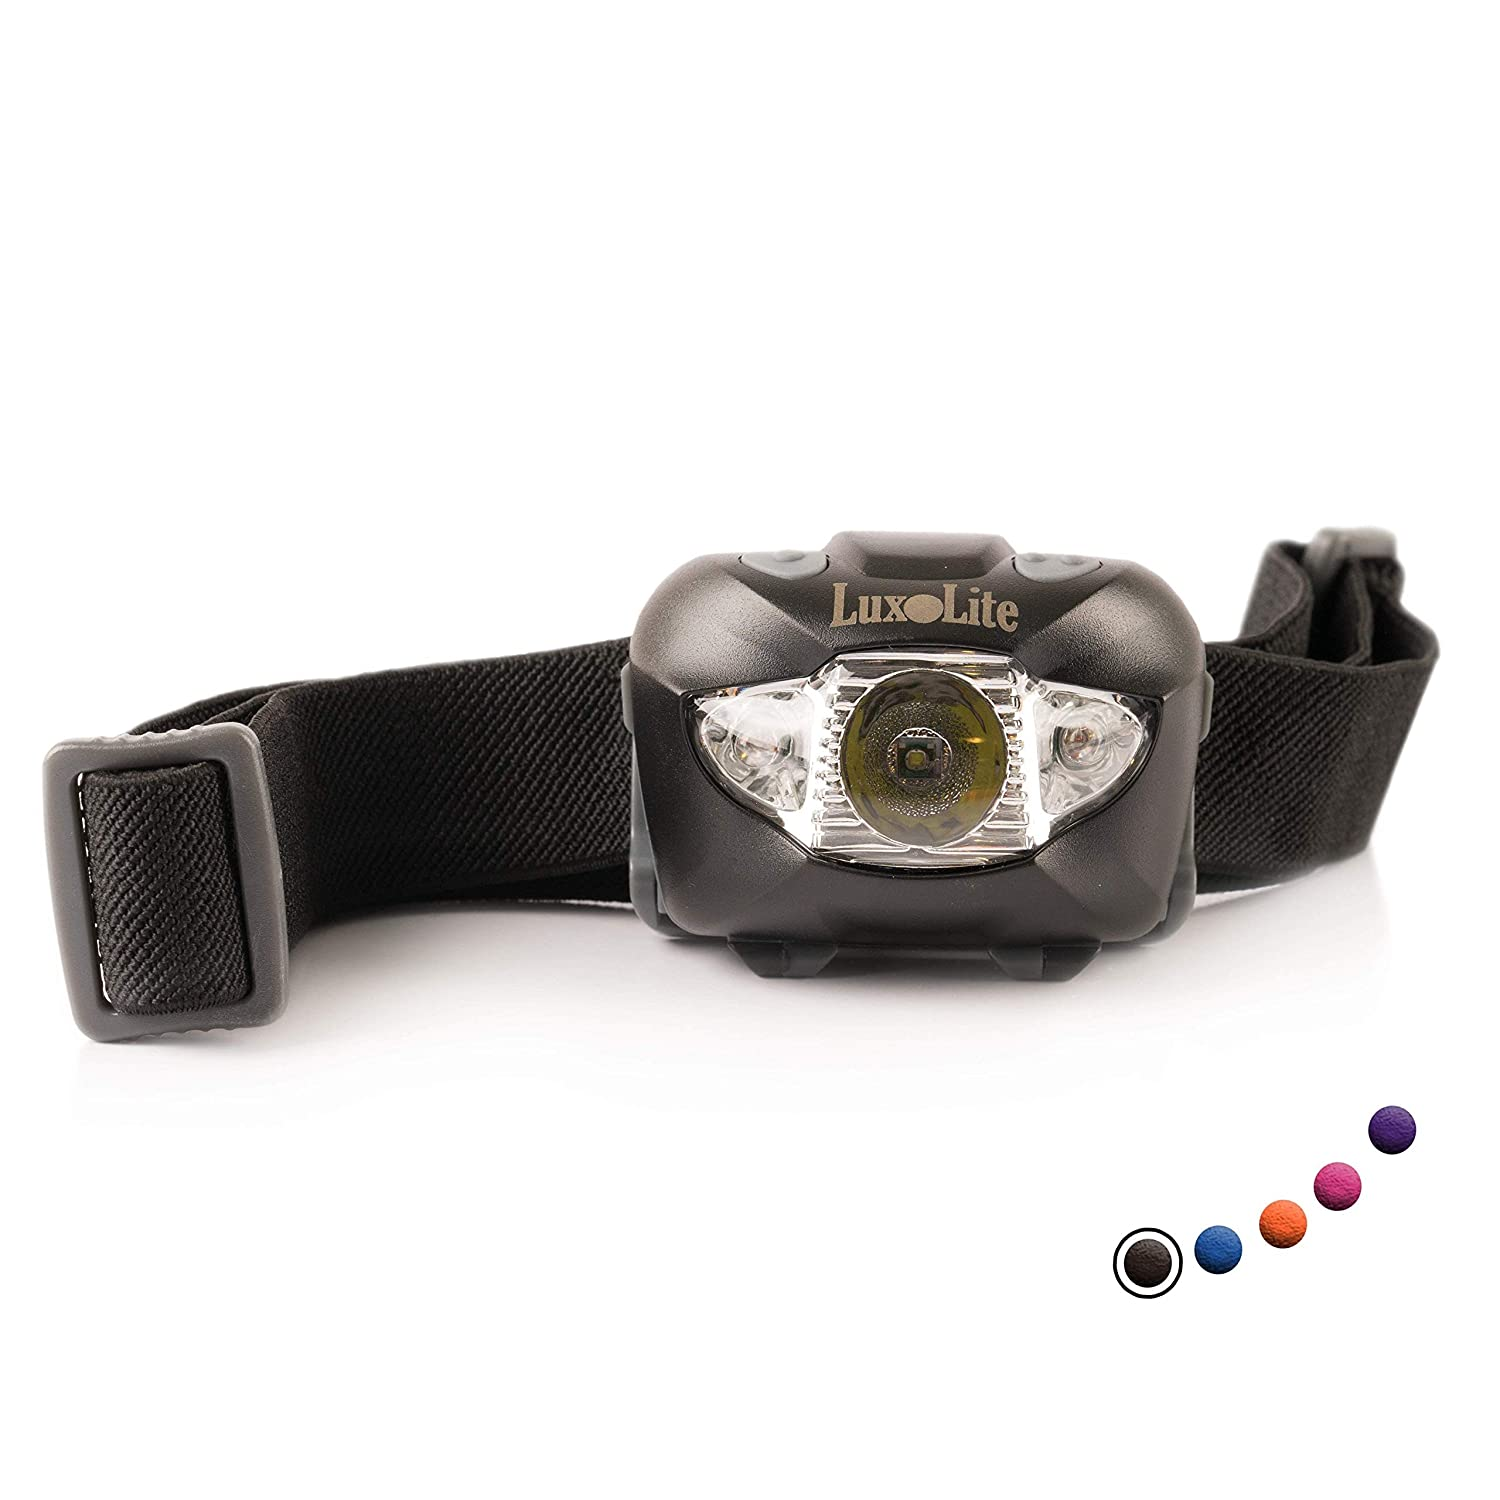 Luxolite LED Headlamp Flashlight